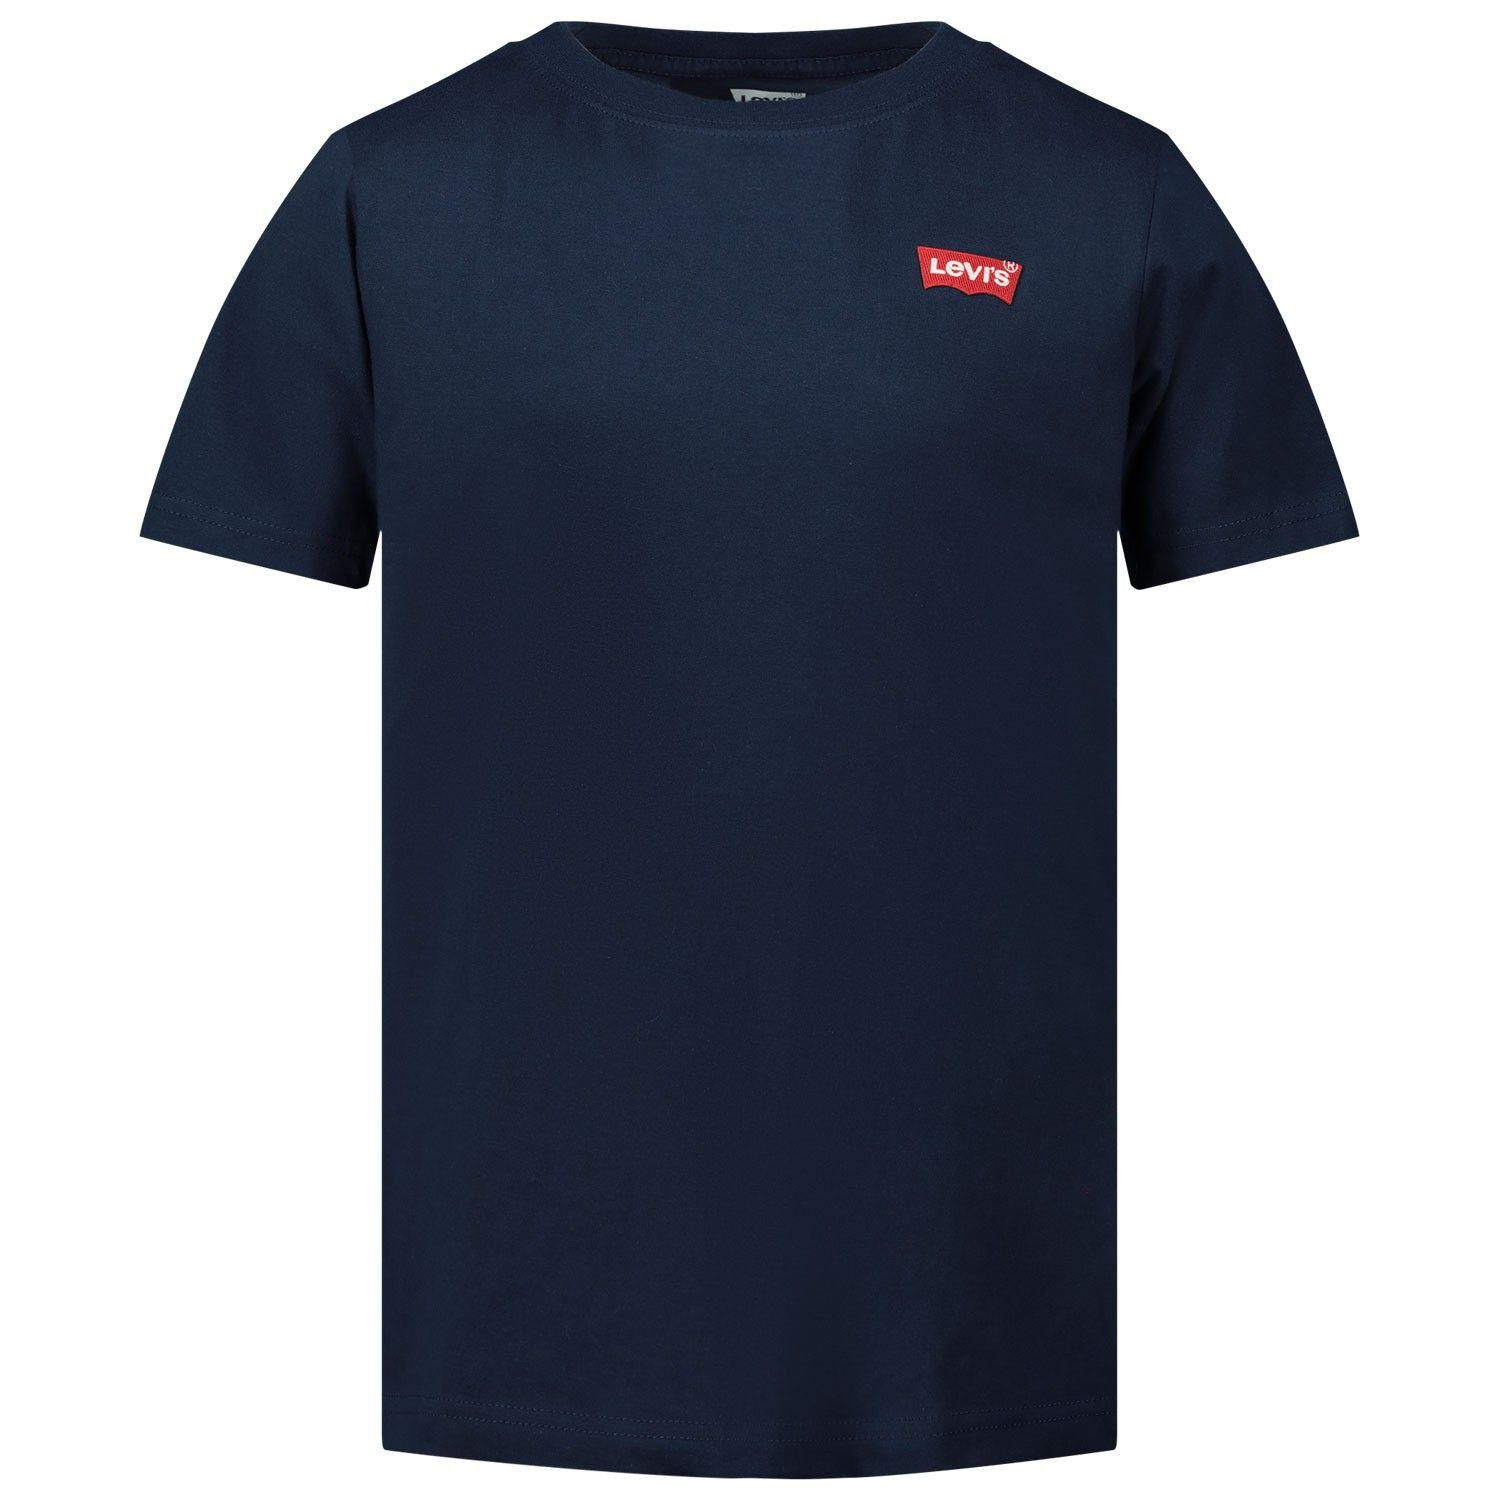 Picture of Levi's A100 kids t-shirt navy